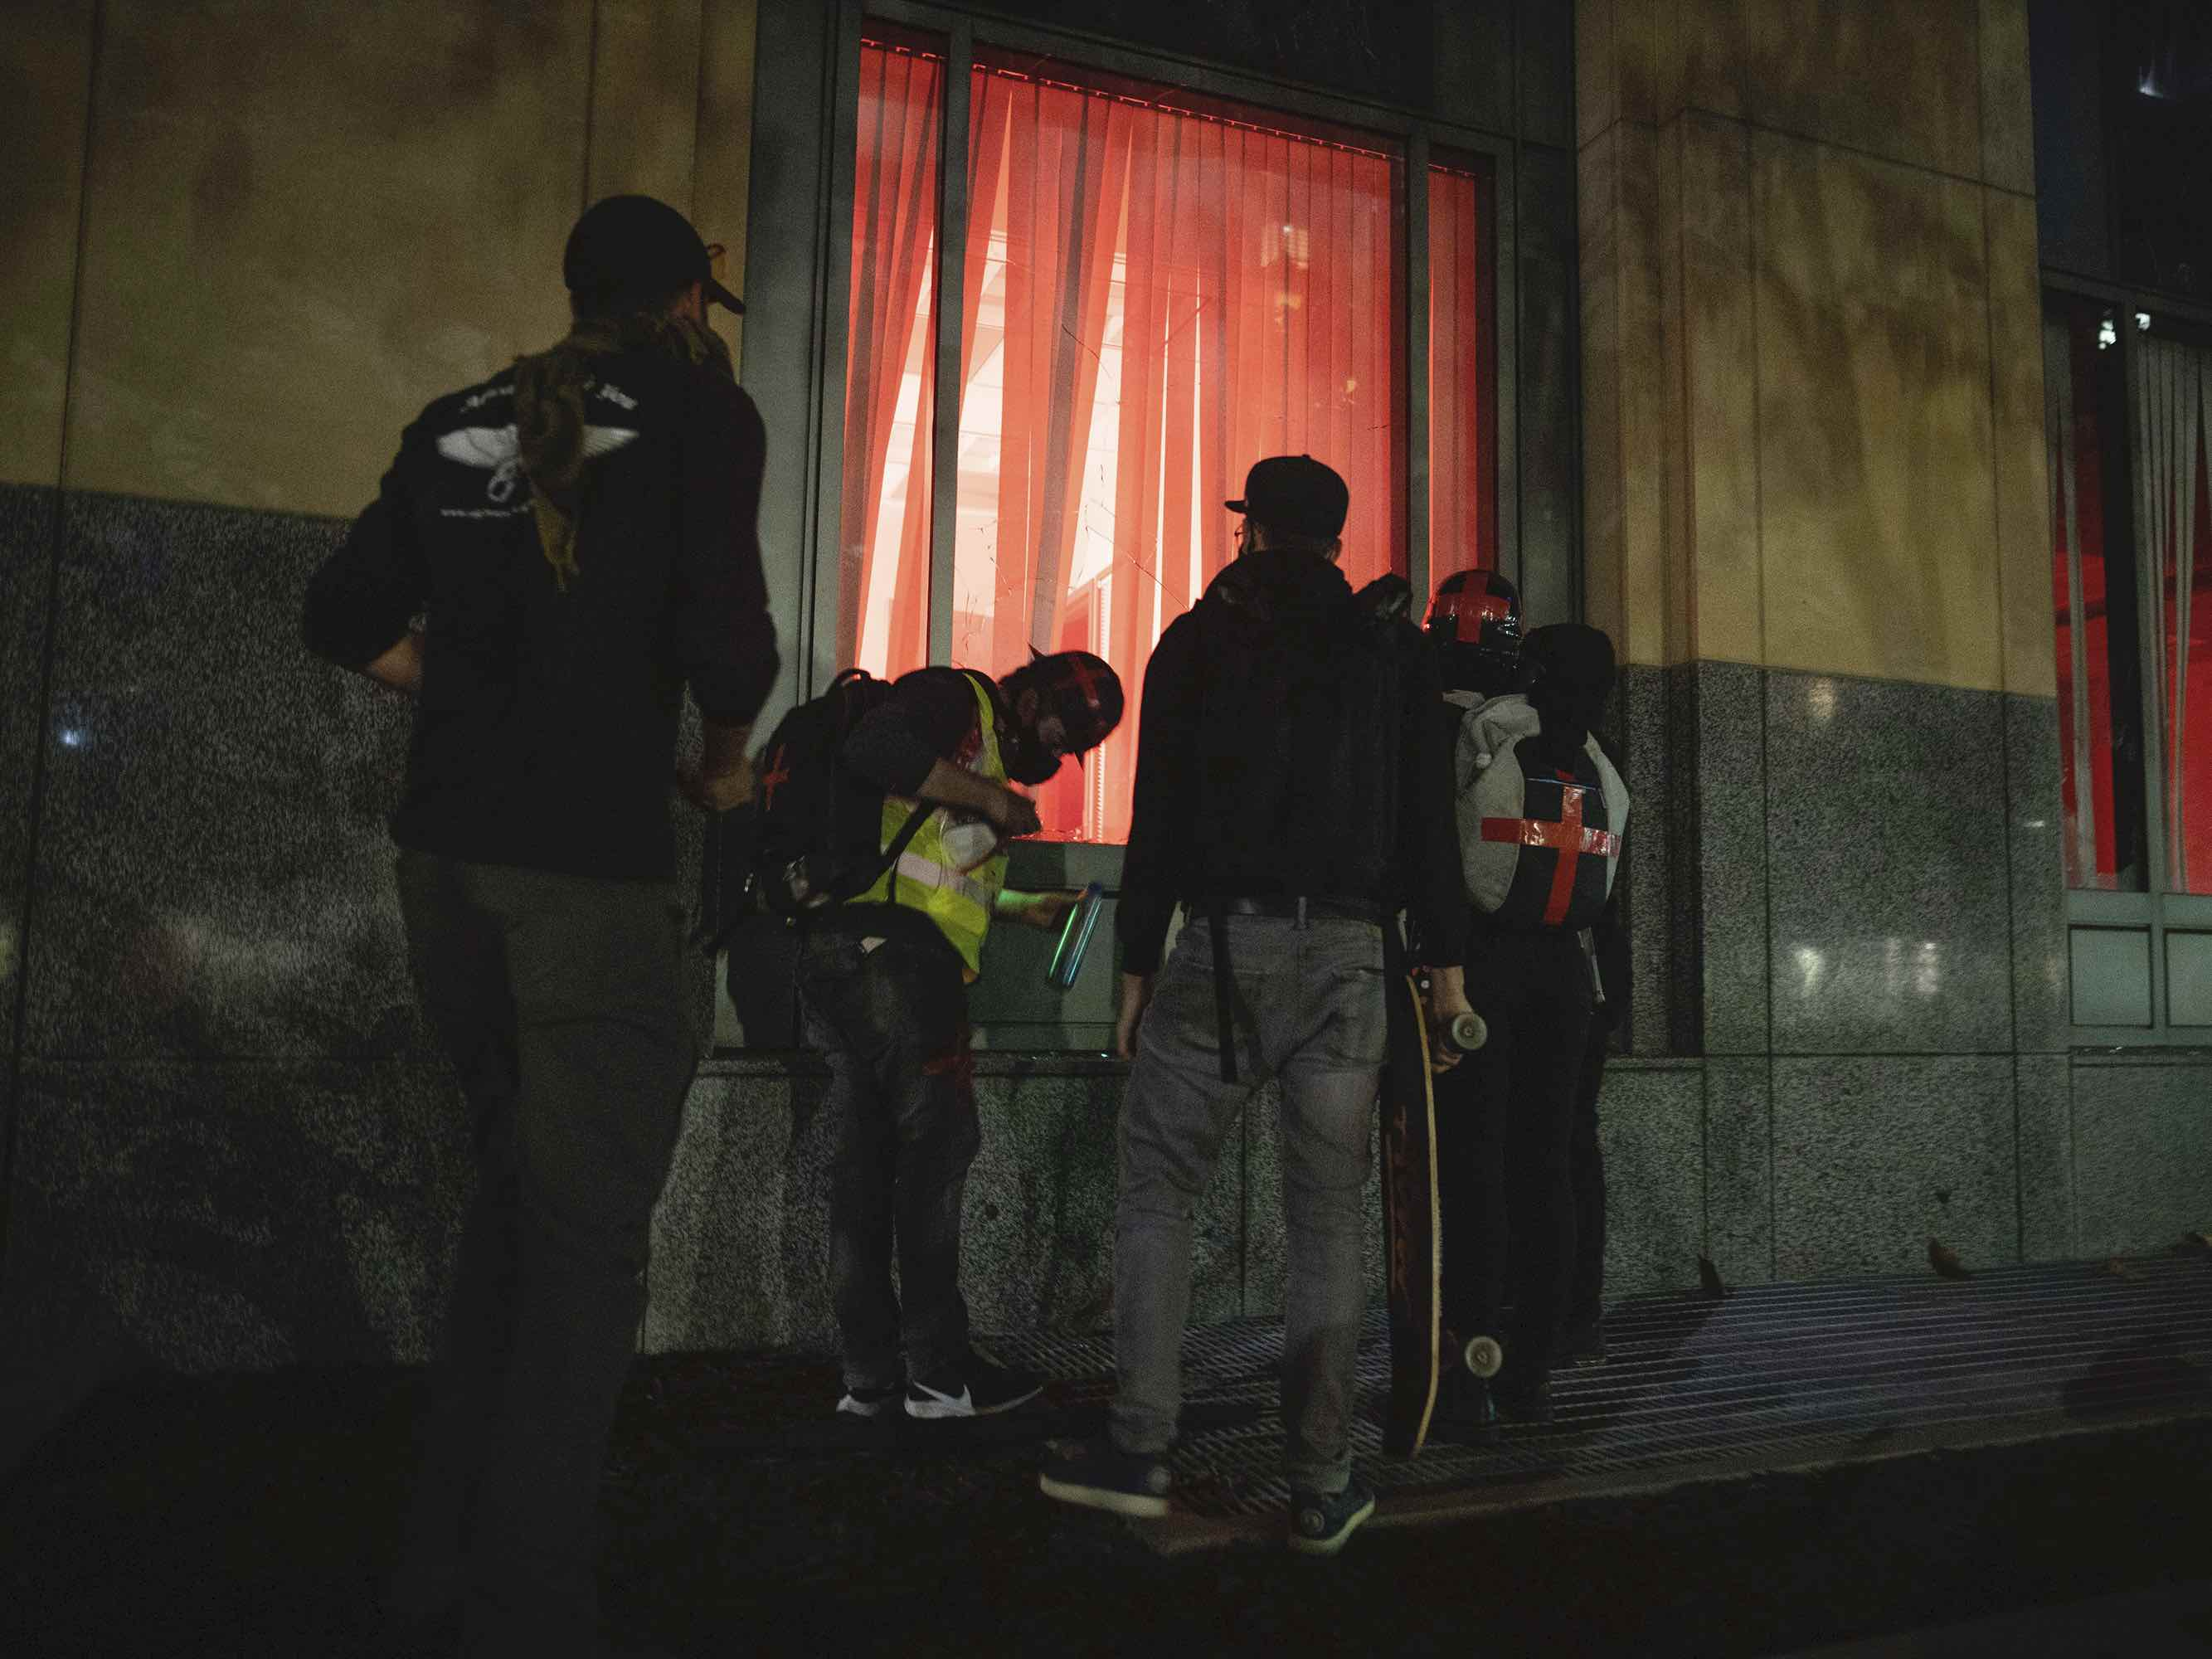 Federal building damaged in Oakland (Christian Monterrosa / Associated Press)